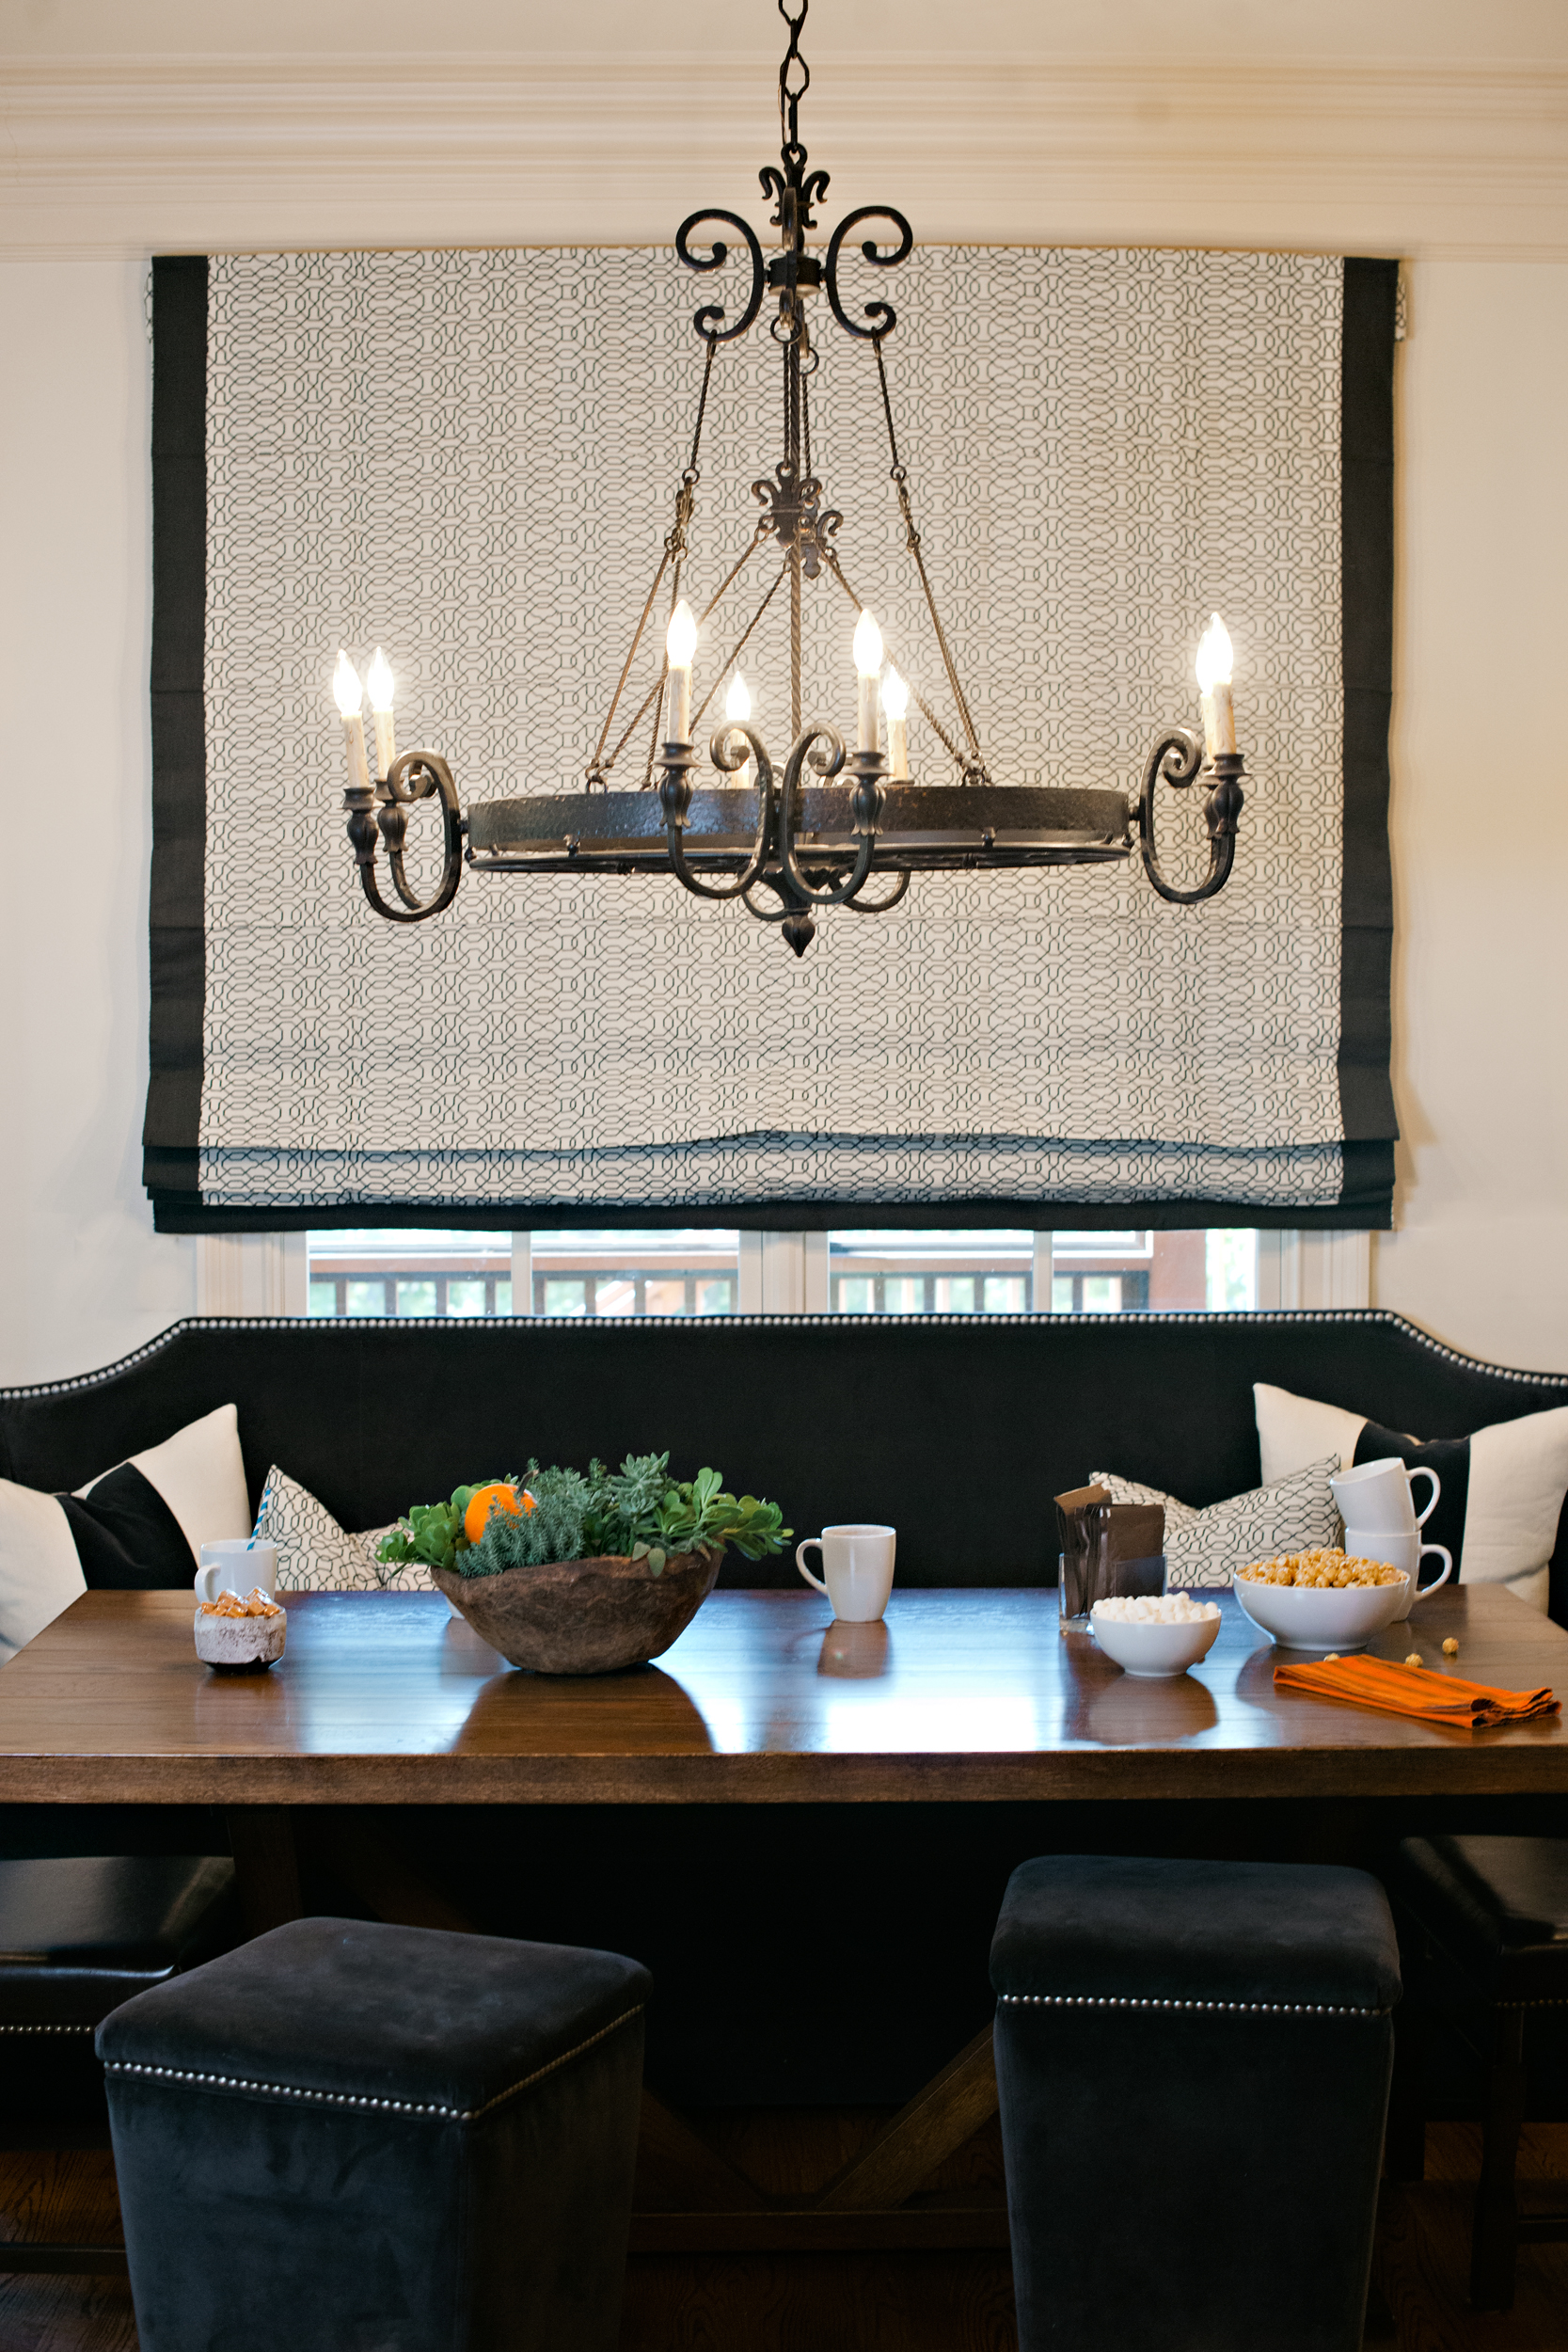 Kitchen Banquette for Family with 2 Boys and 2 Dogs Image Credit: Graham Yelton